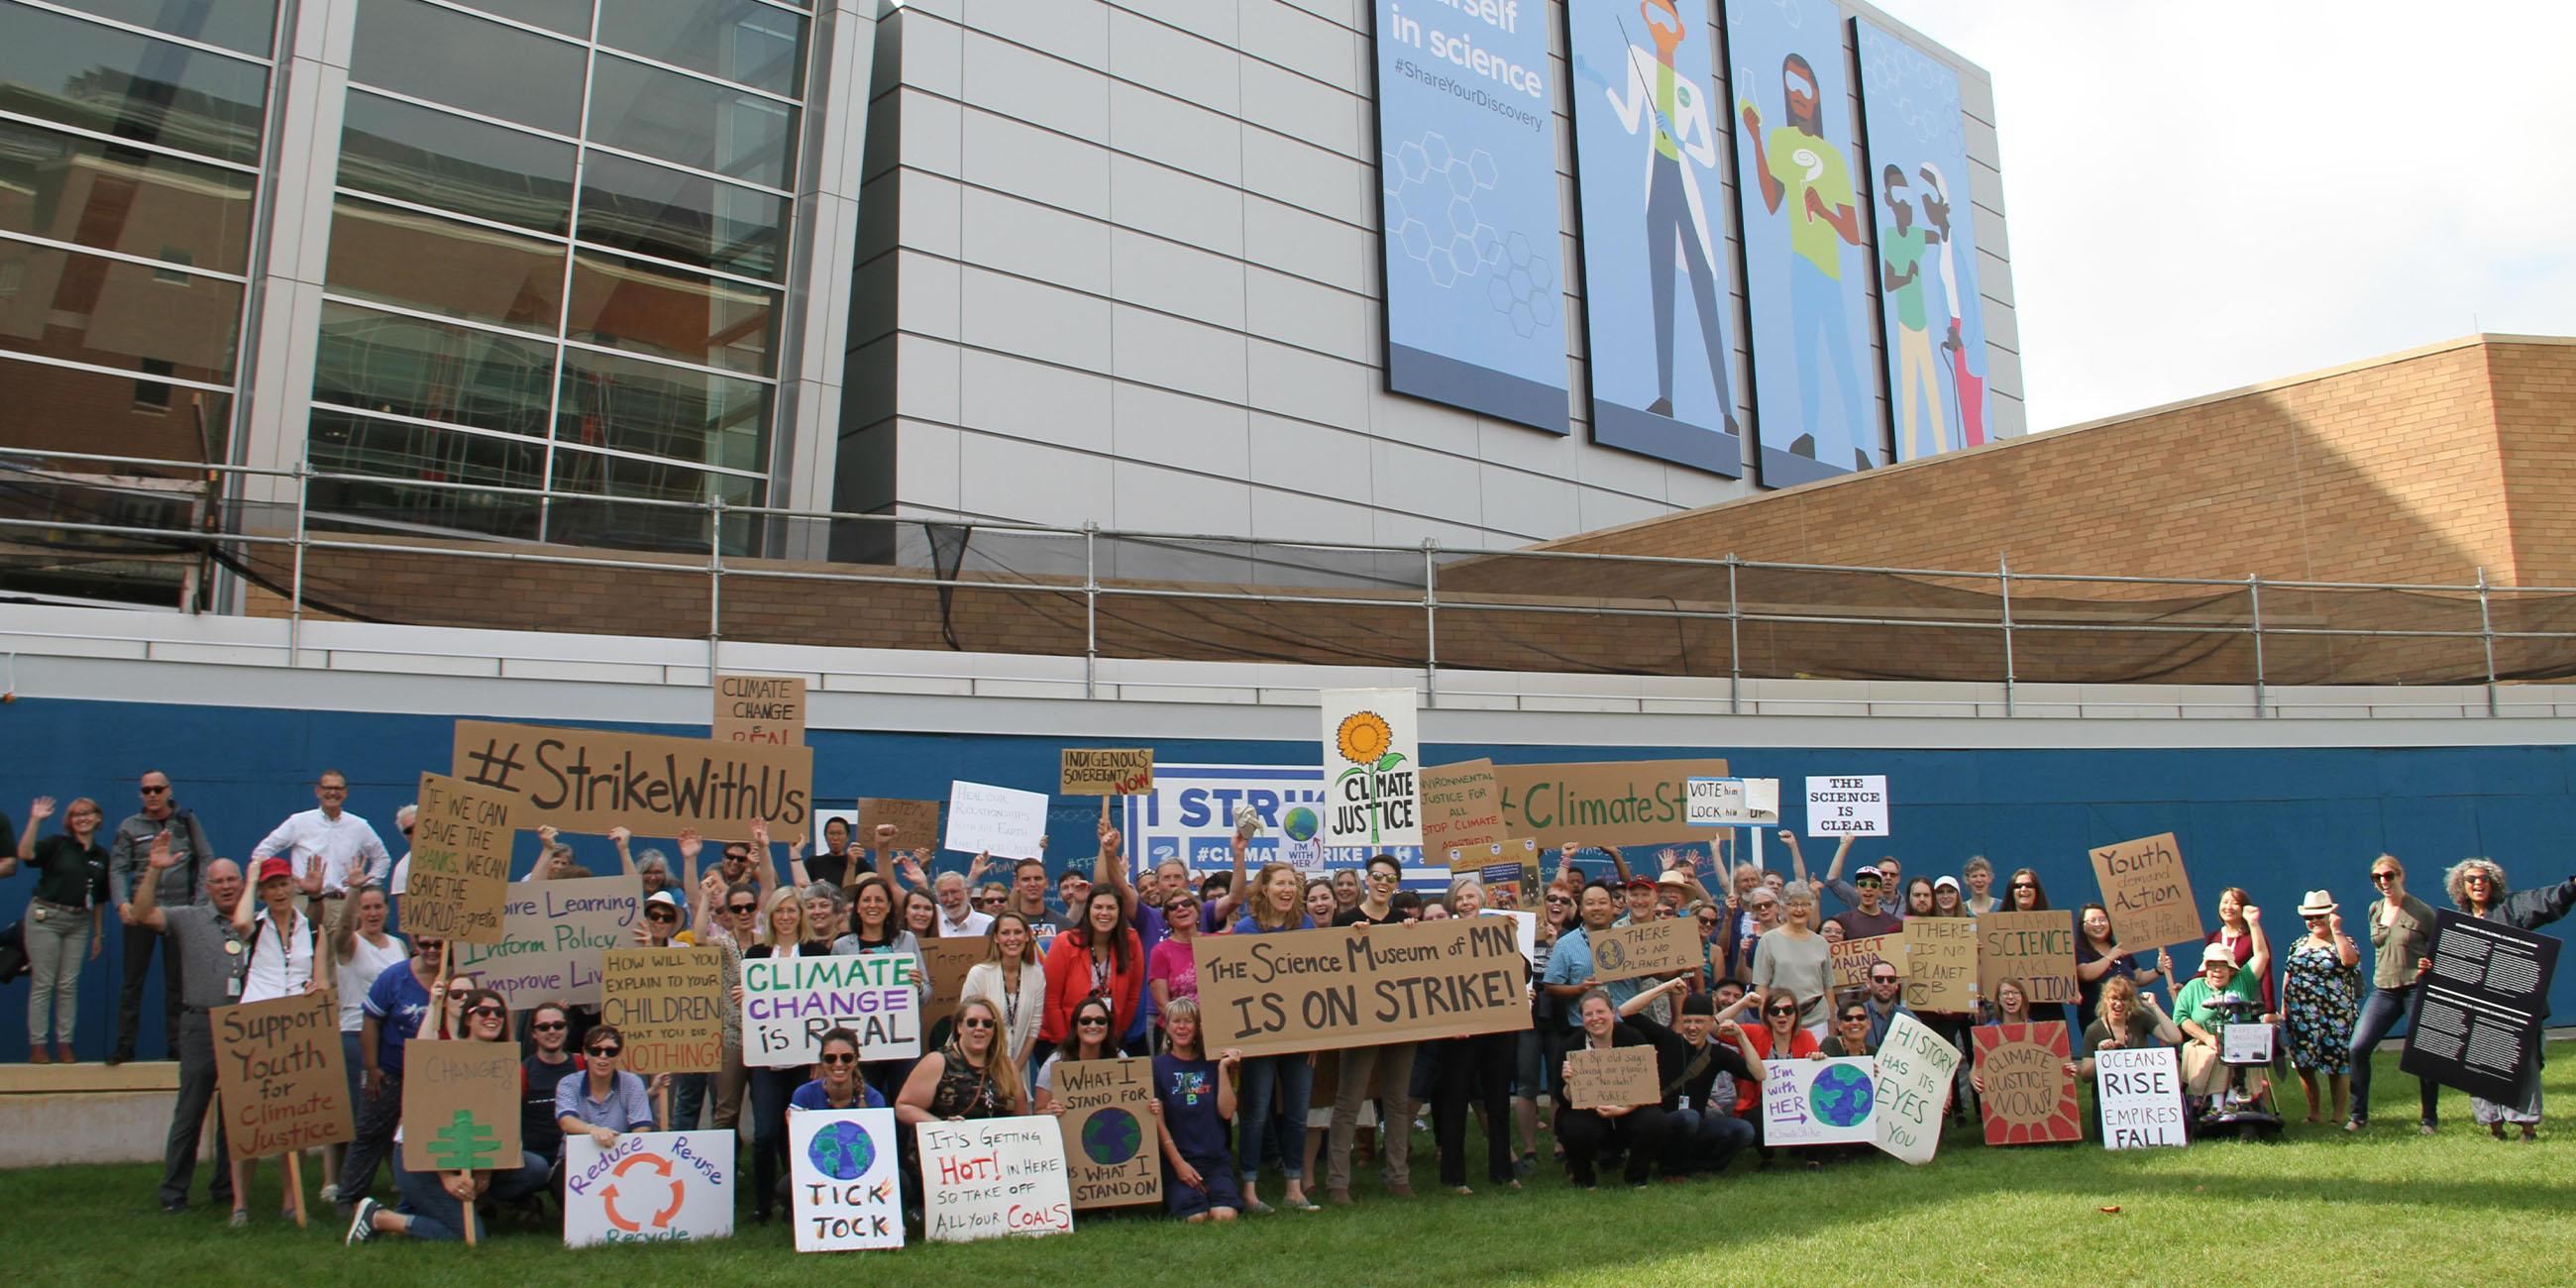 Our staff and volunteers at a climate change event.